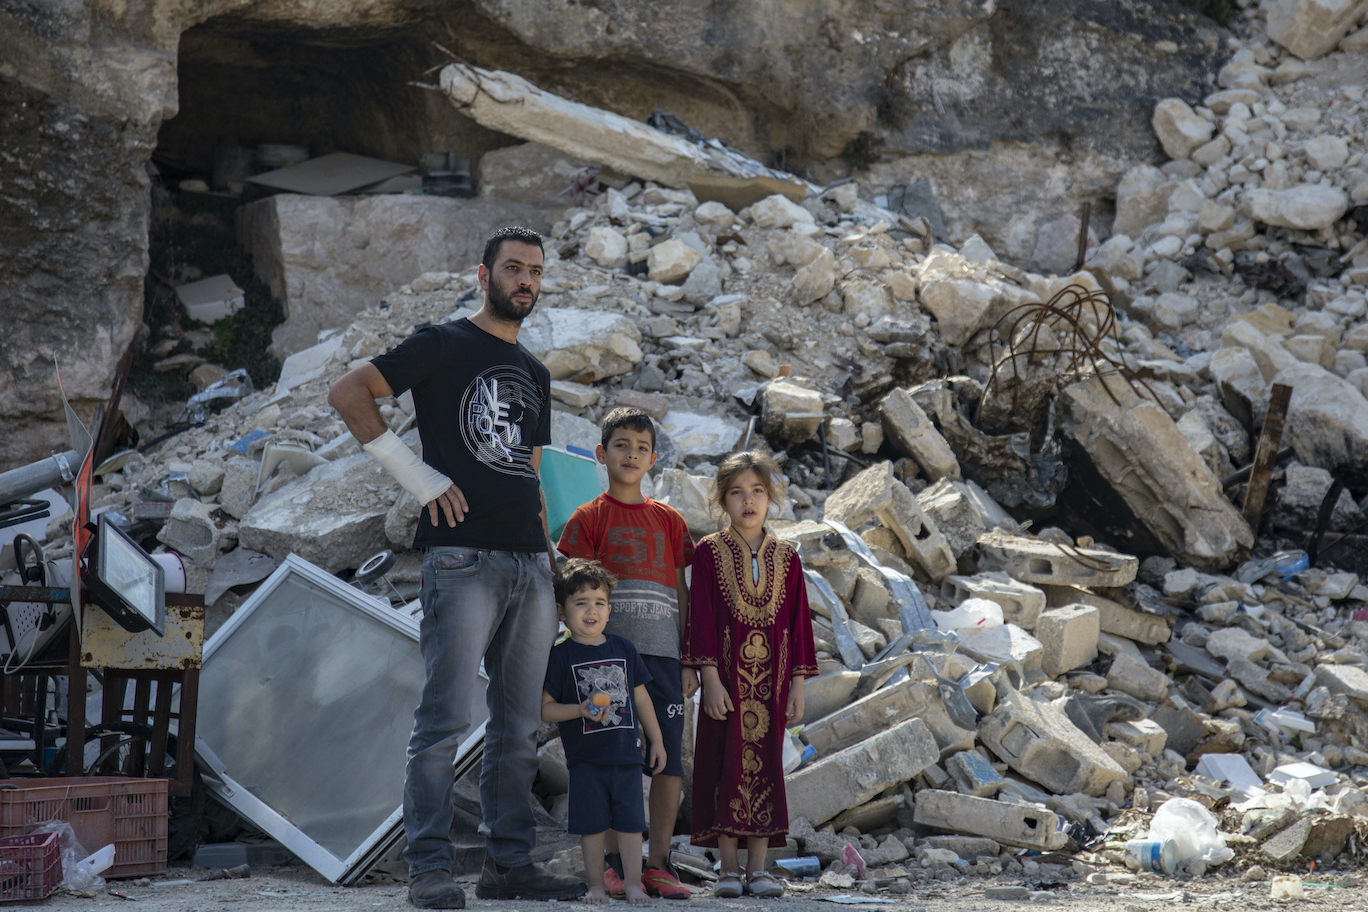 Quosay Burqan stands with his children in front of the ruins of their home in Silwan, East Jerusalem, after it was demolished by Israeli authorities, November 8, 2019. (Faiz Abu Rmeleh/Activestills.org)